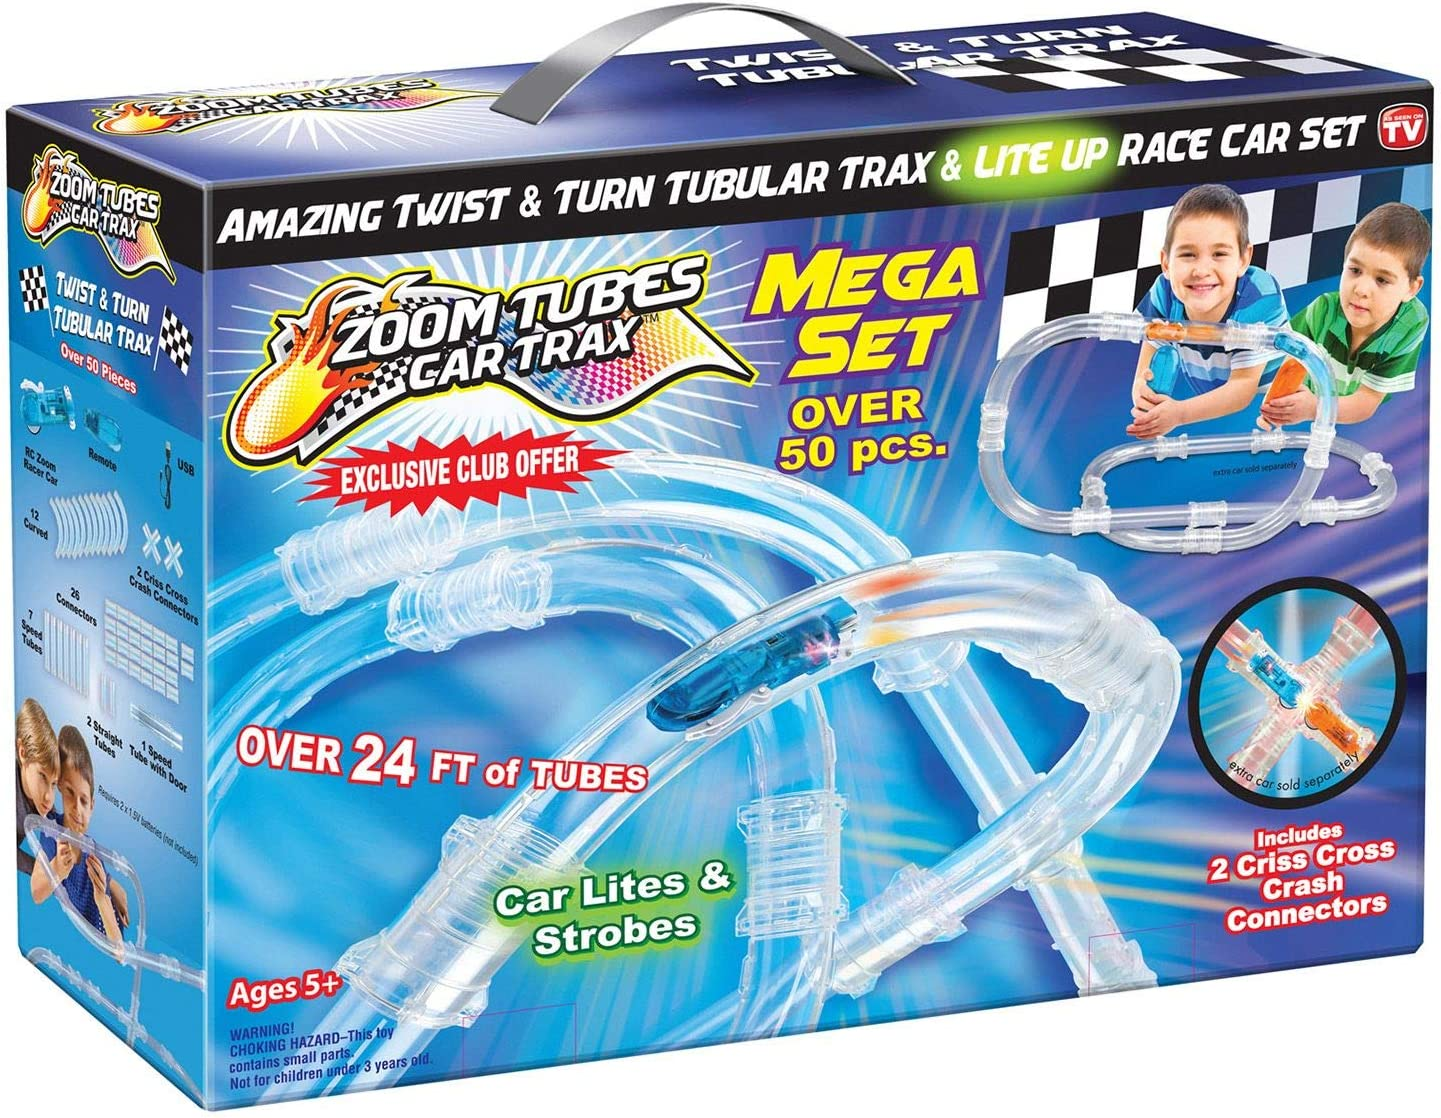 As Seen on TV ZOOM TUBES CAR TRAX MEGA Set 50-Pc RC Car Trax Set with 1 Blue Racer and Over 24ft of Tubes